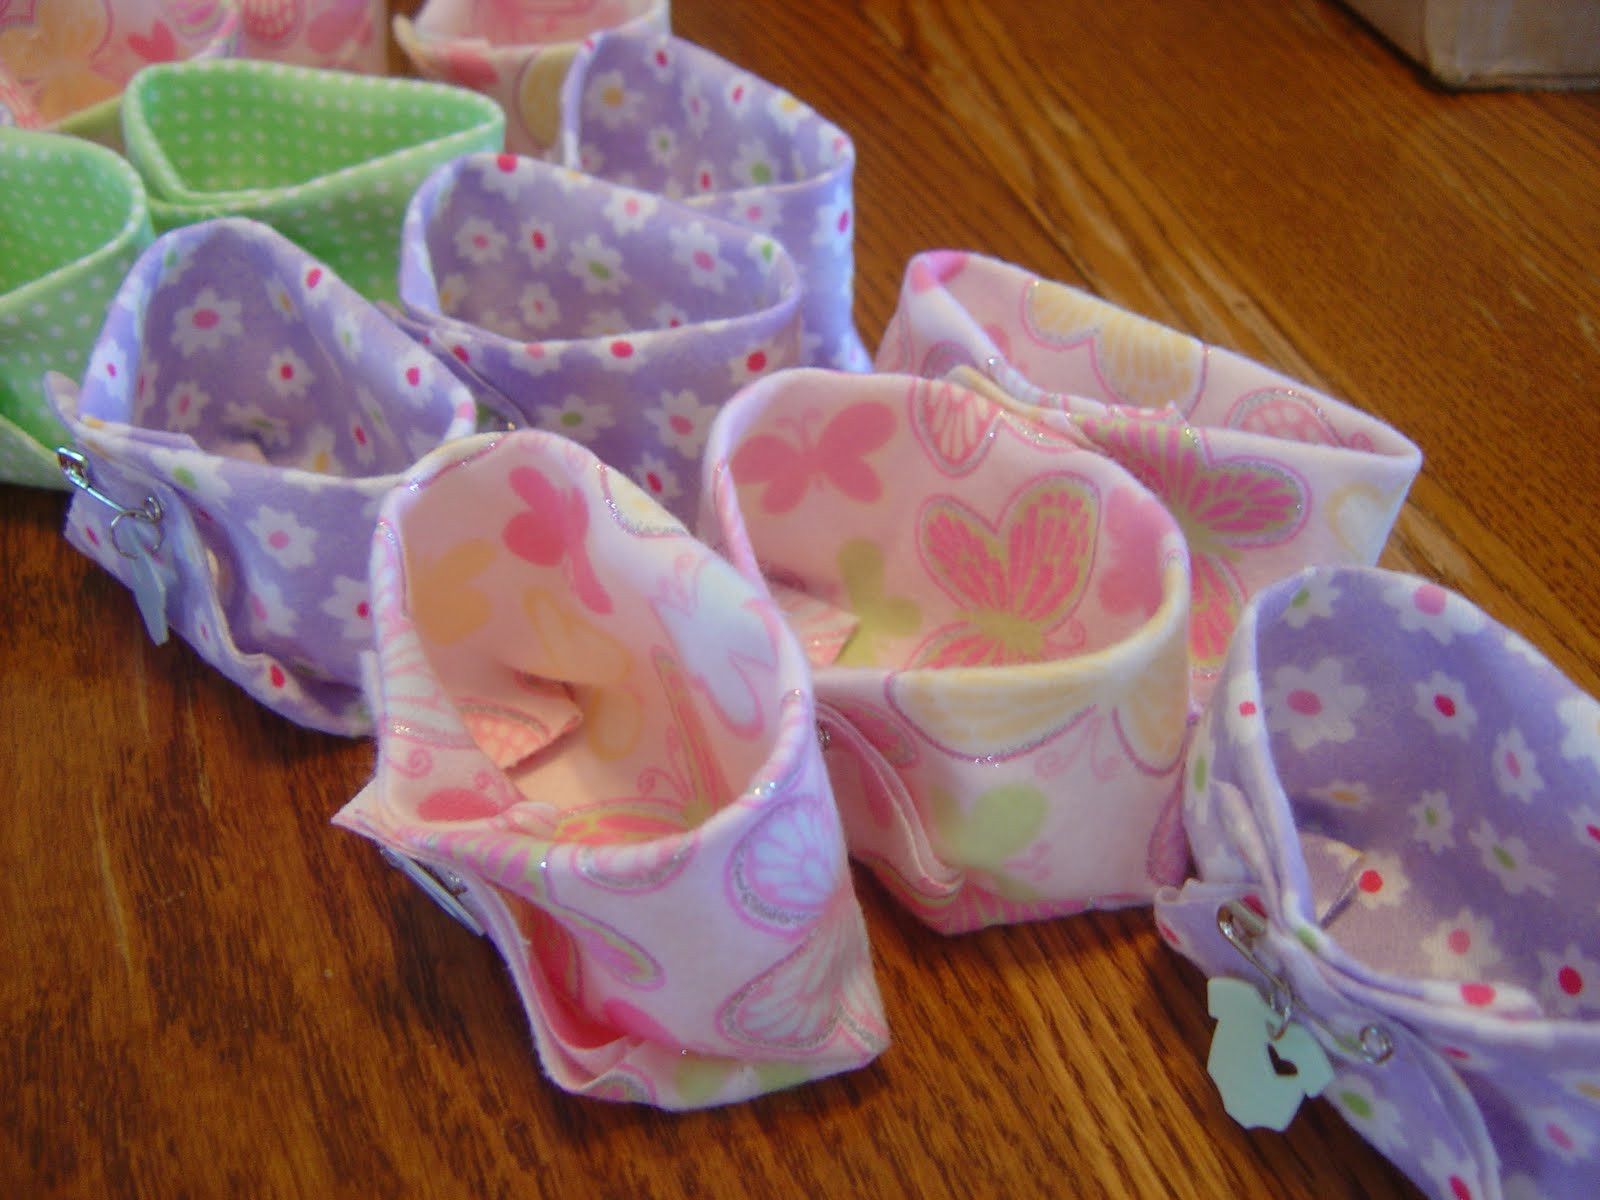 Baby Shower Giveaway Gift Ideas  Baby shower giveaway t ideas